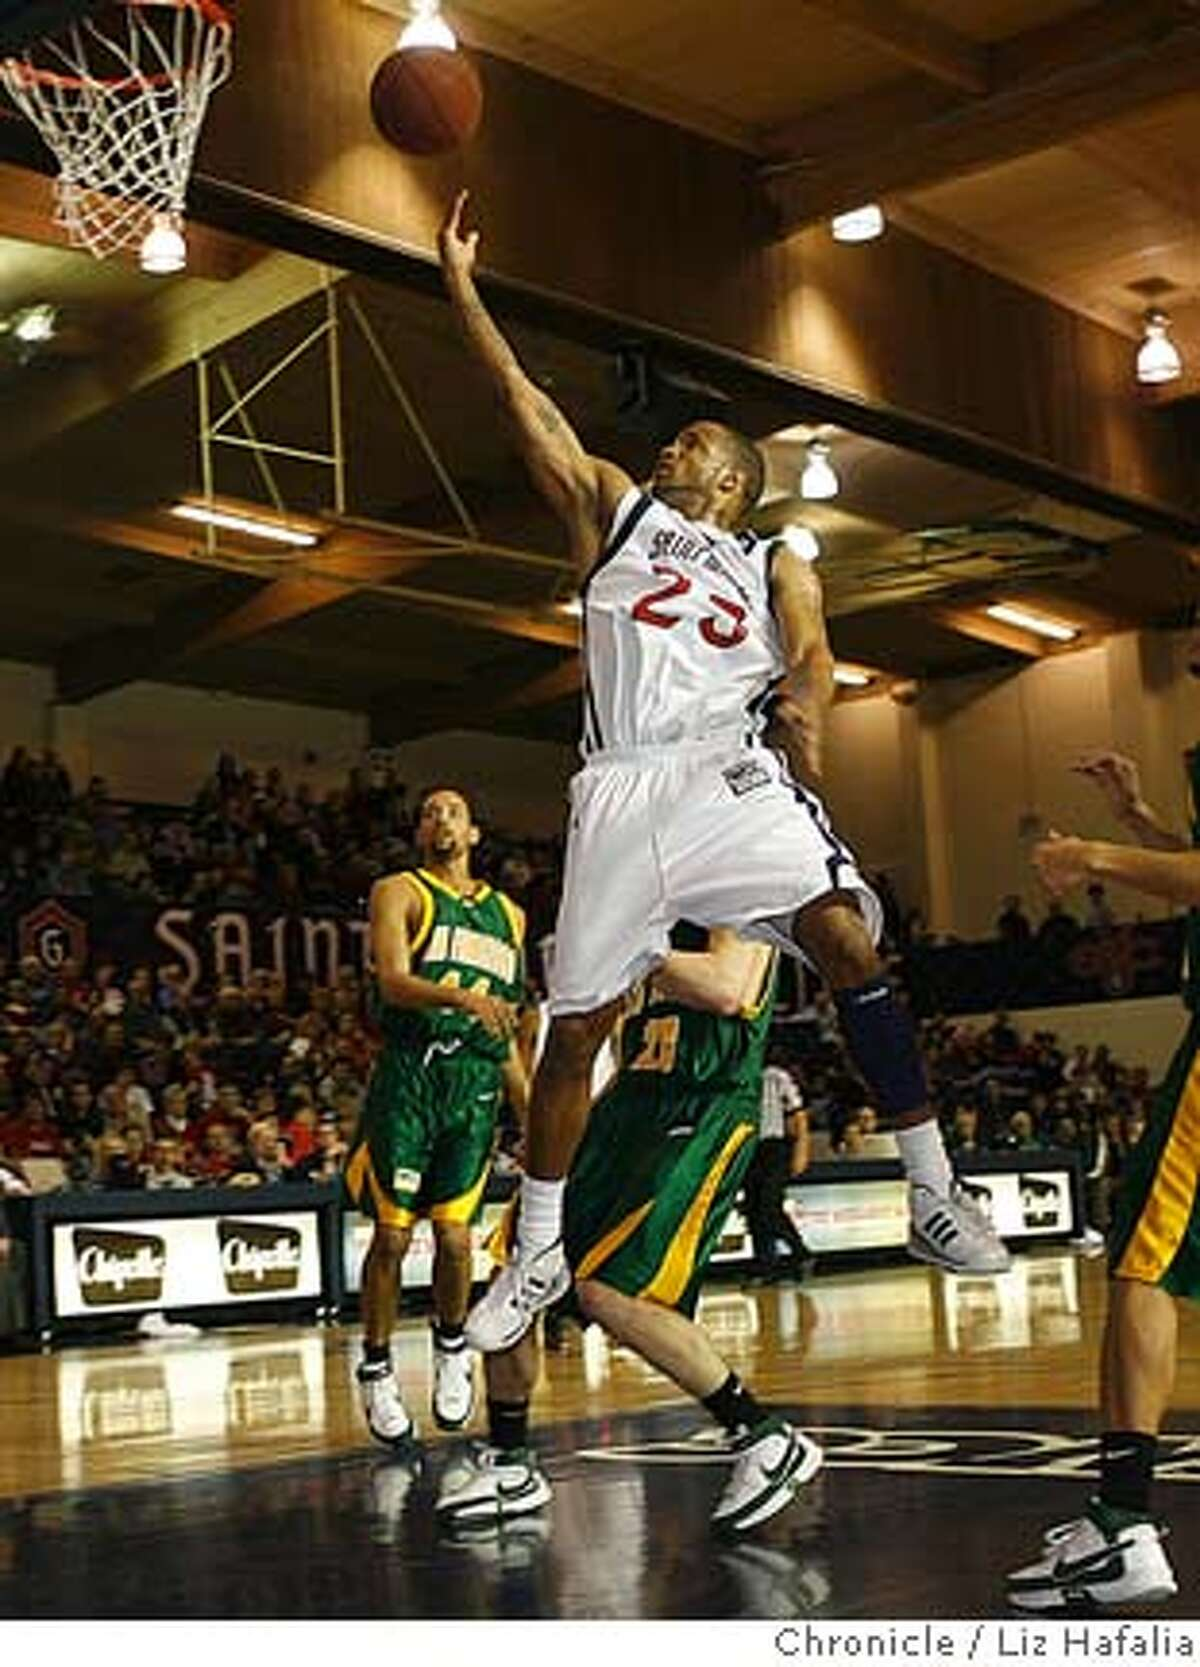 St. Mary's hosts USF at McKeon Pavilion. Saint Mary's Gaels' guard Tron Smith scores during the second half. Ran on: 02-09-2008 St. Marys Diamon Simpson drives against USF in the win that put the Gaels at the 20-win mark.